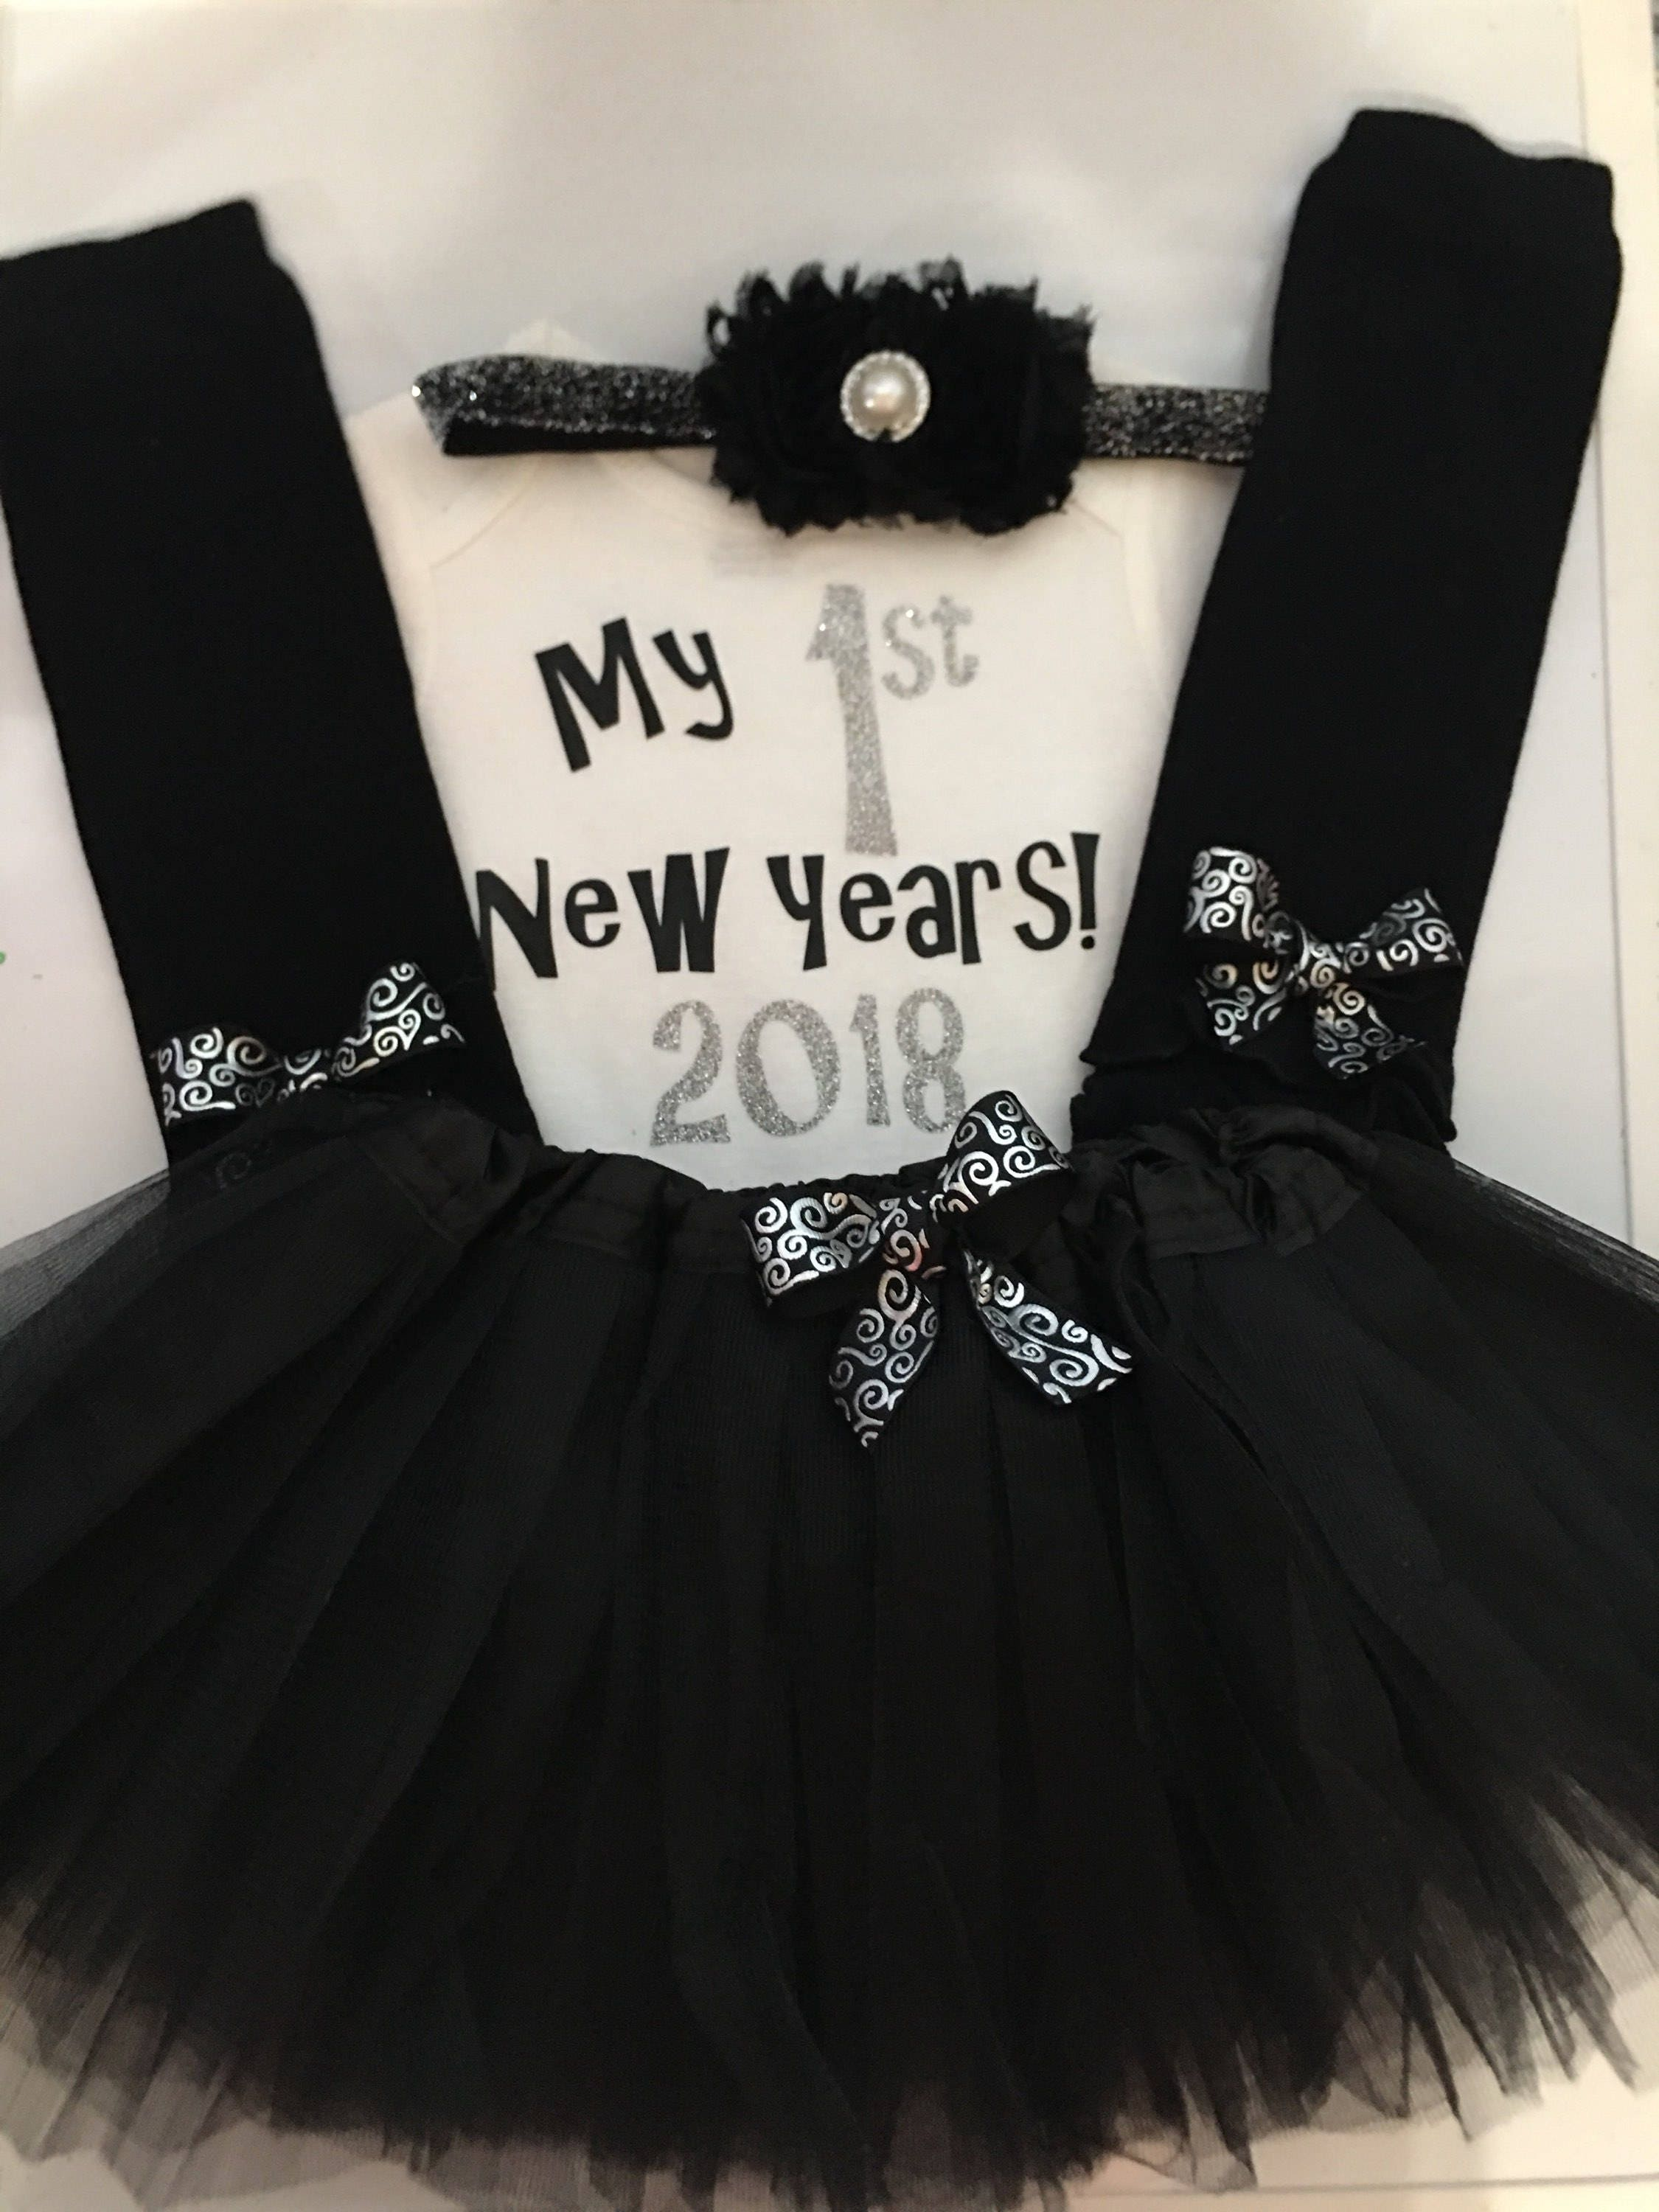 adbb447d0aead ... my first new years outfit - 2019 New years baby outfit - baby girl  photo prop-TUTU. gallery photo ...